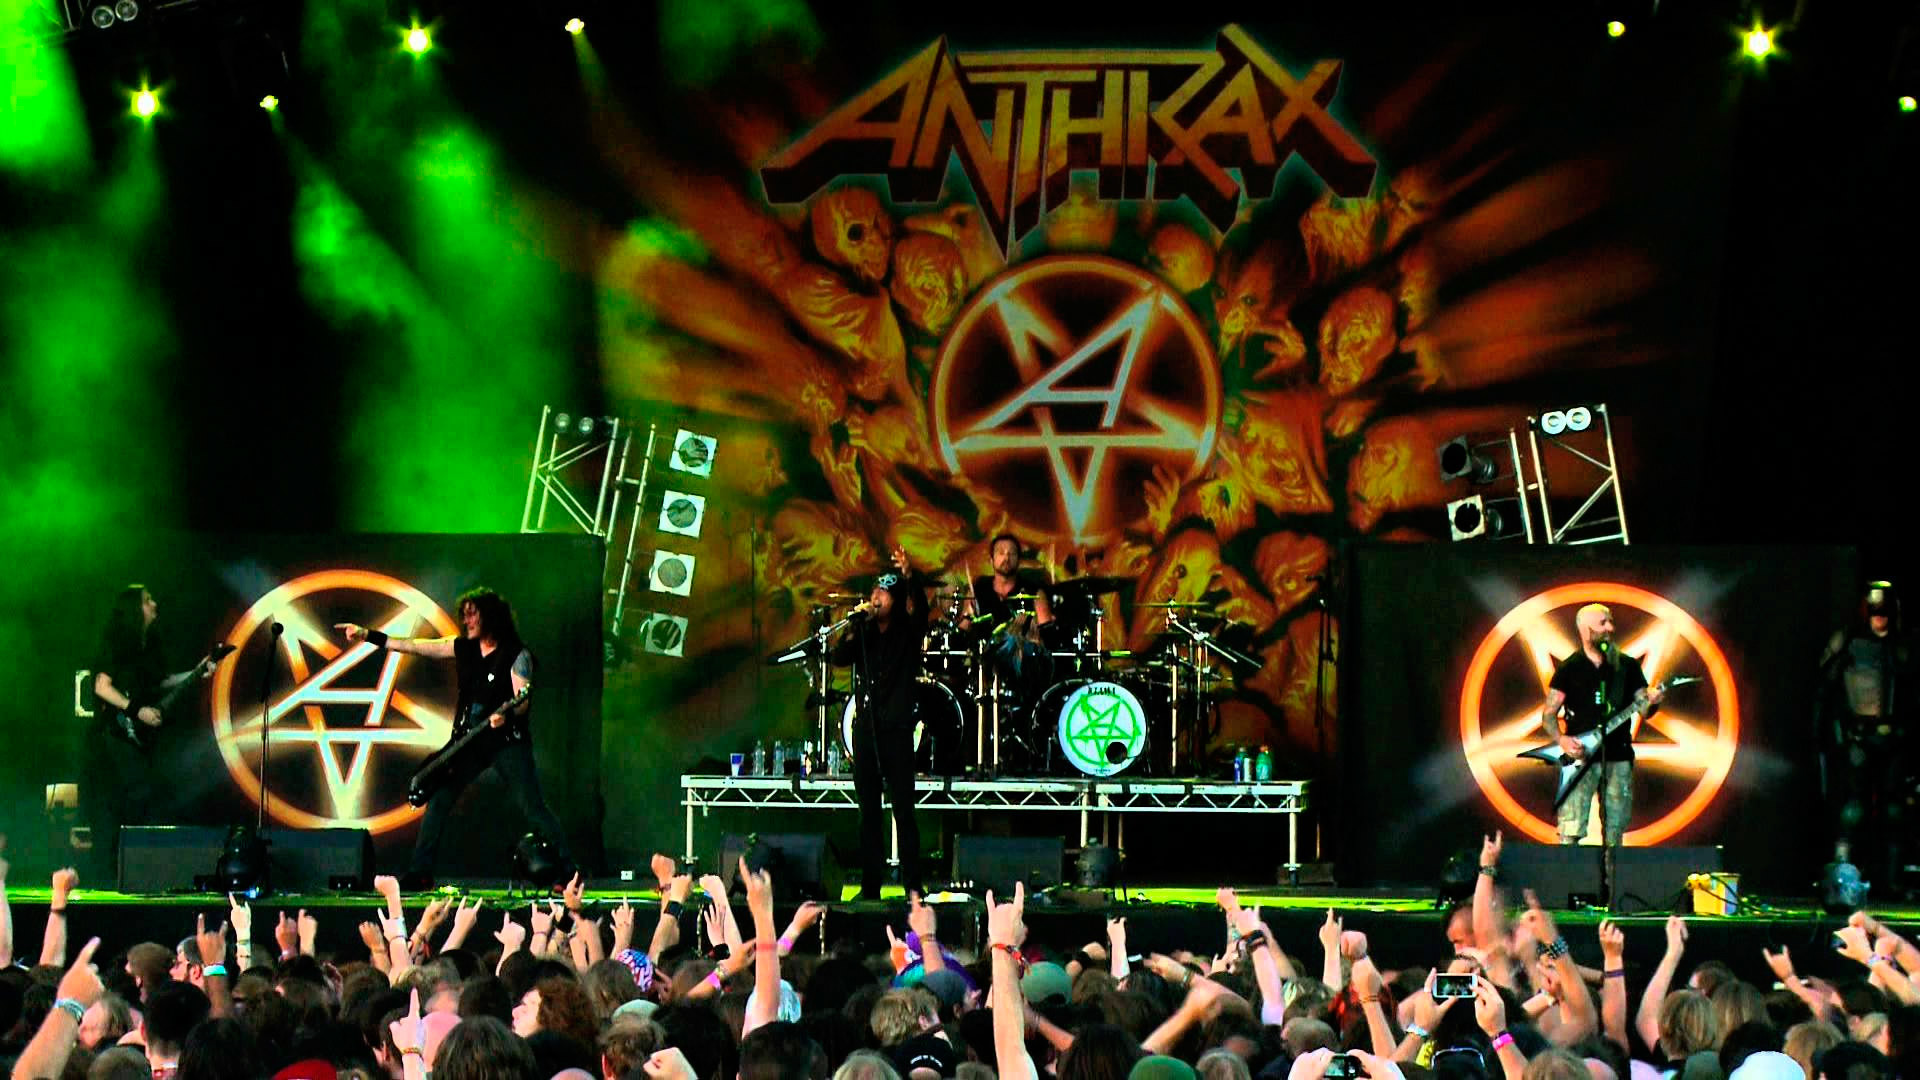 Anthrax Wallpapers 64 Pictures